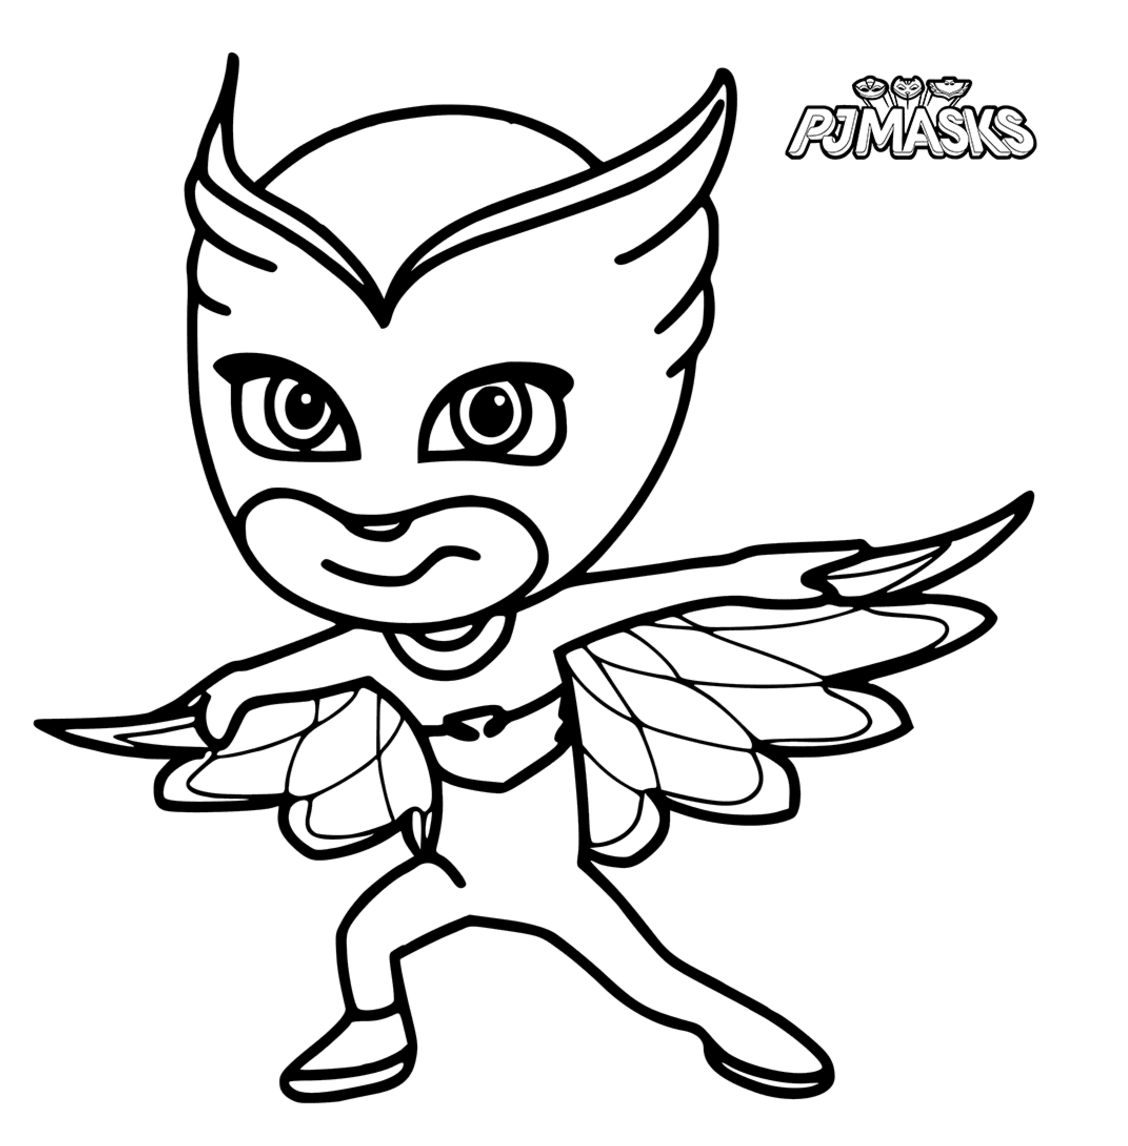 pj masks coloring pages to download and print for free - Pj Masks Coloring Pages